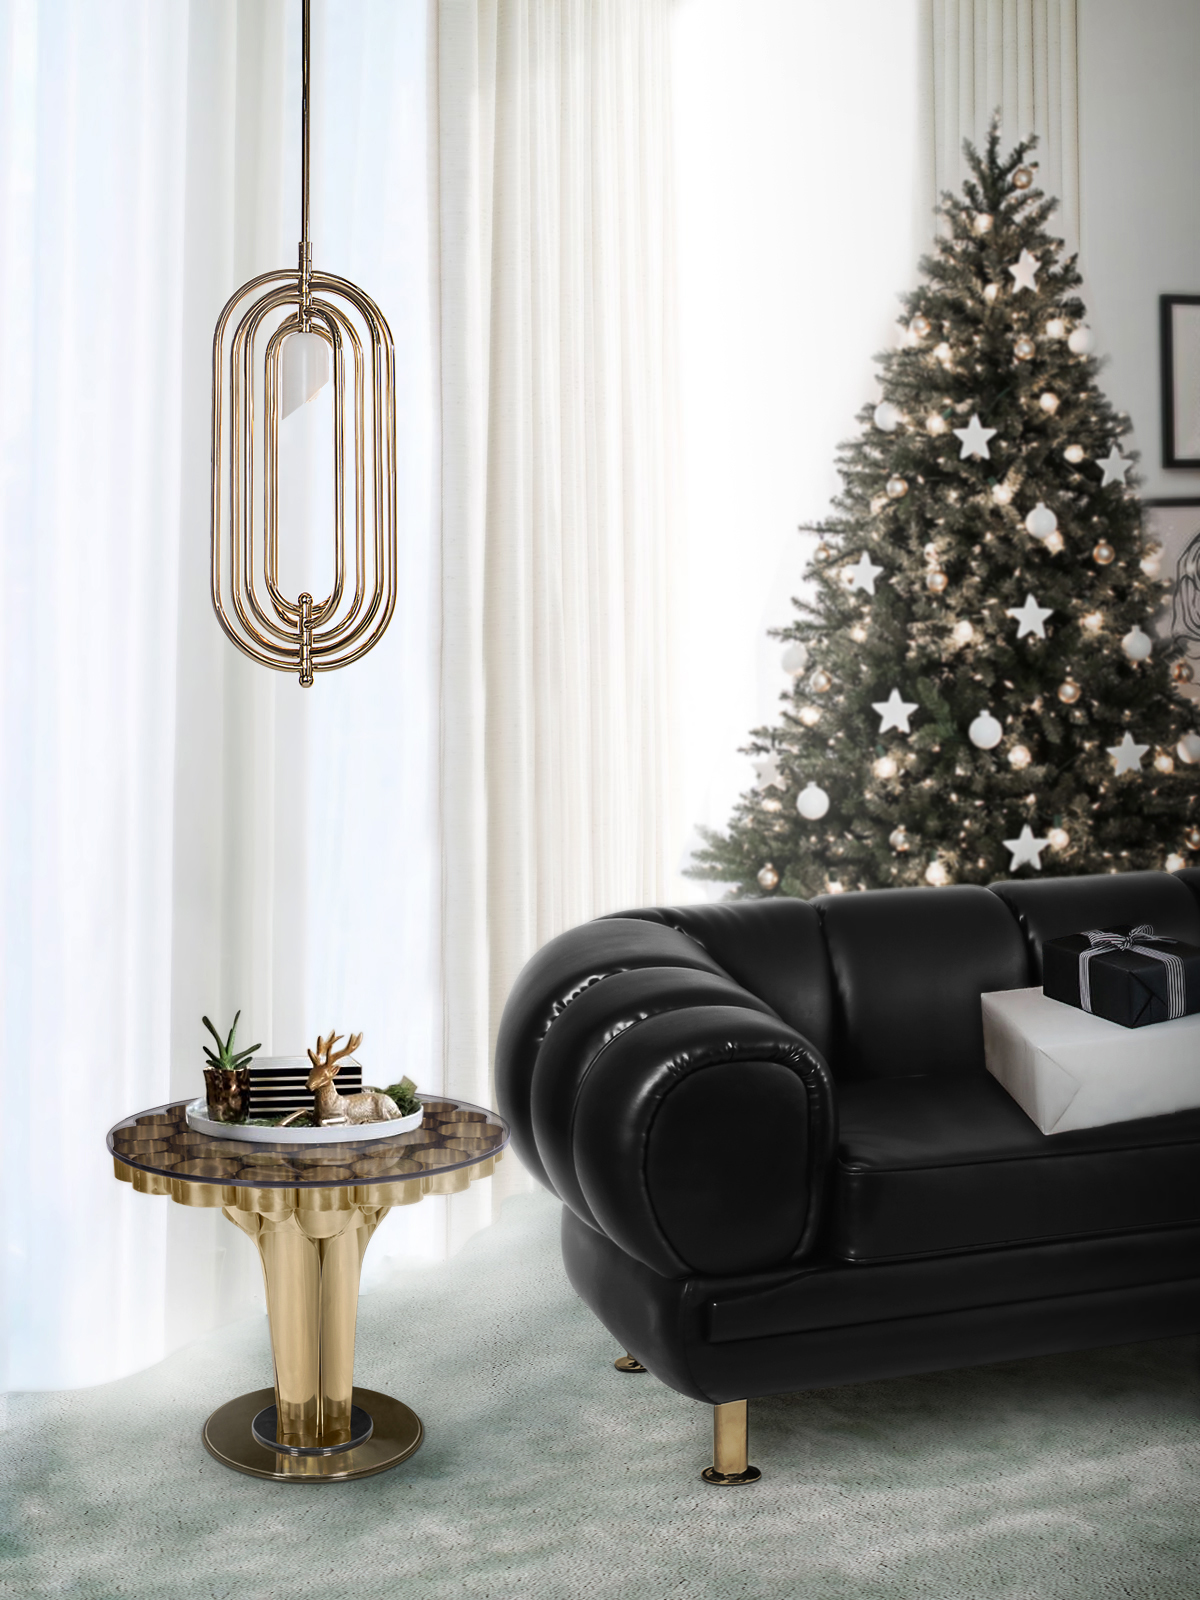 How To Make Your Christmas Living Room Decor Look Like A Million Bucks_1 christmas living room decor How To Make Your Christmas Living Room Decor Look Like A Million Bucks How To Make Your Christmas Living Room Decor Look Like A Million Bucks 1